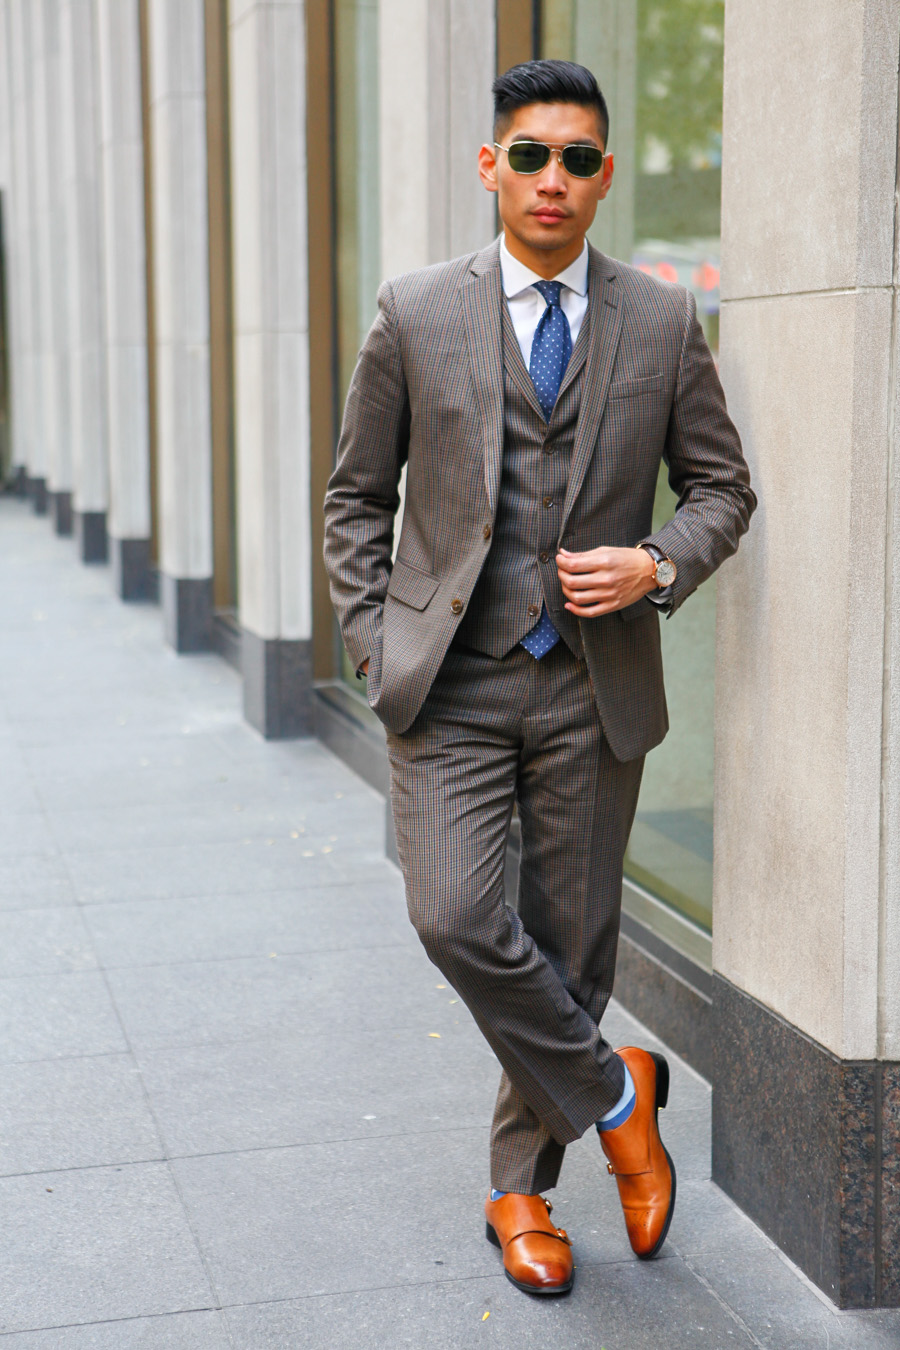 Levitate Style, Bar III, Suit, Three-piece, Wear to Work, Double Monk Strap